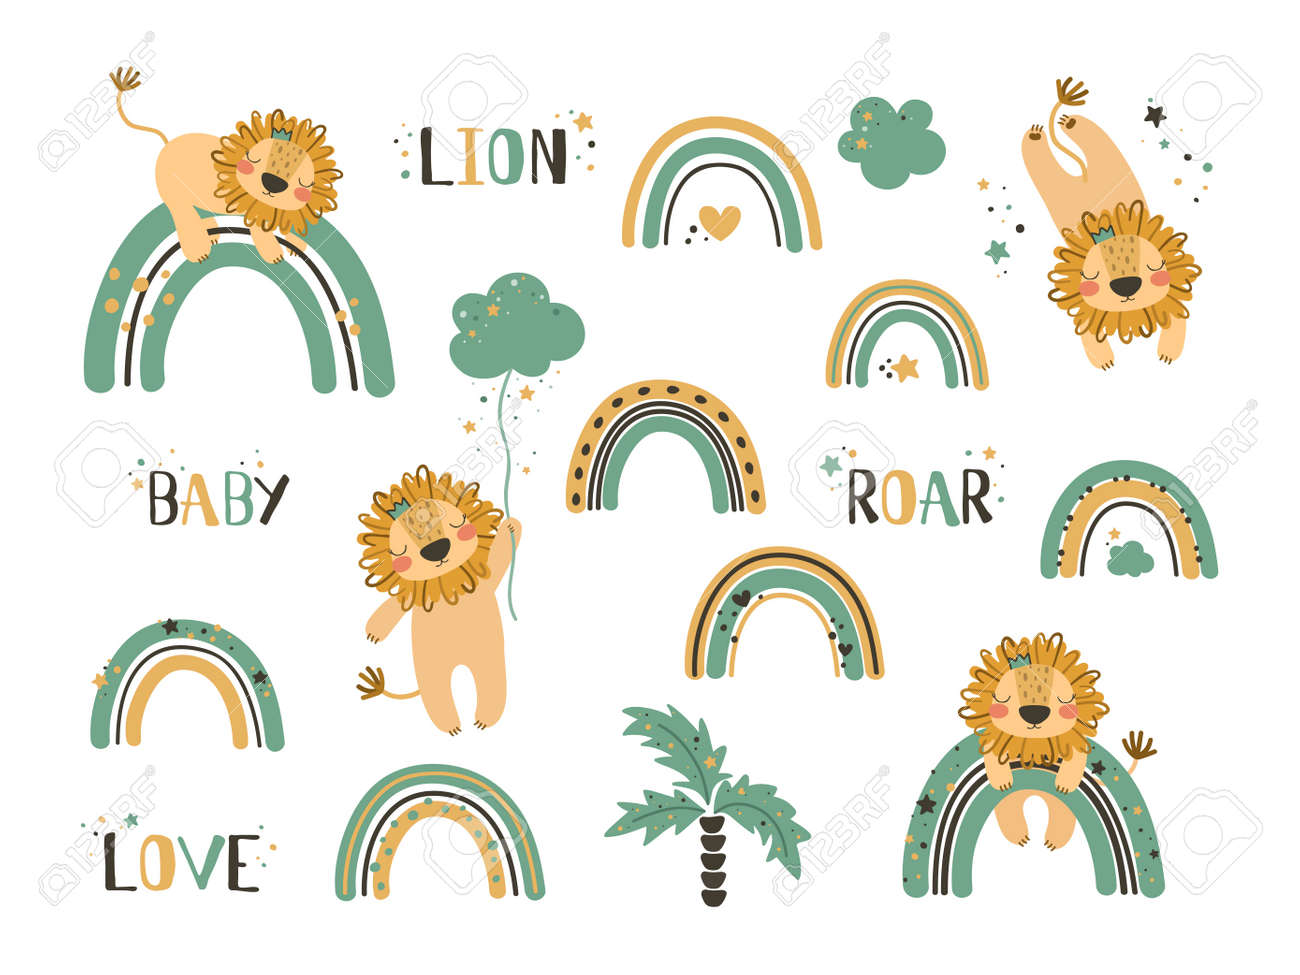 Set of cute lion clip art. Use this clipart to create baby shower invites, nursery art, birthday decor, greeting cards, children's clothing. Vector illustration. - 158863459